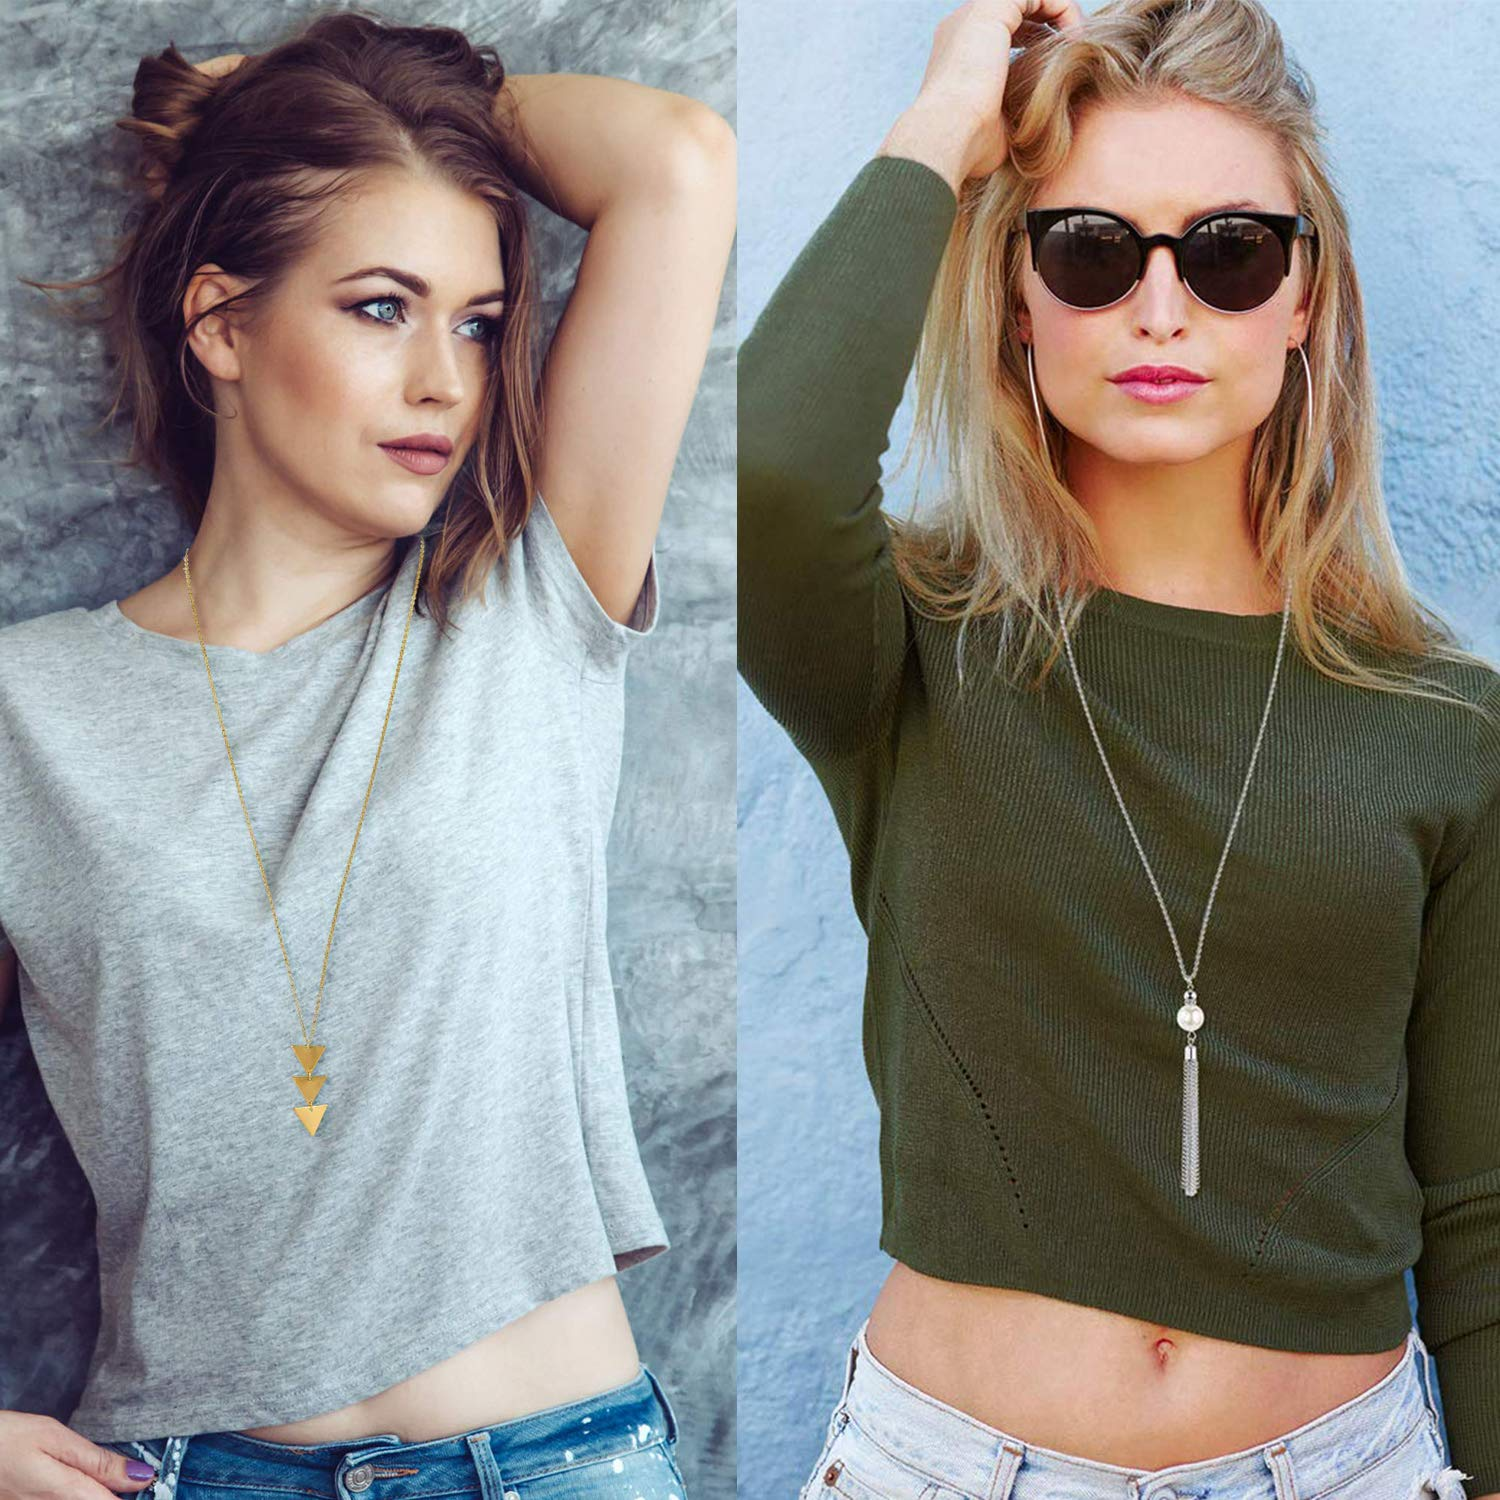 Sunmoon 6 PCS Long Pendant Necklaces for Women Girls Y Necklace Layered Simple Bar Triangle Tassel Charm Statement Necklace Set Strands